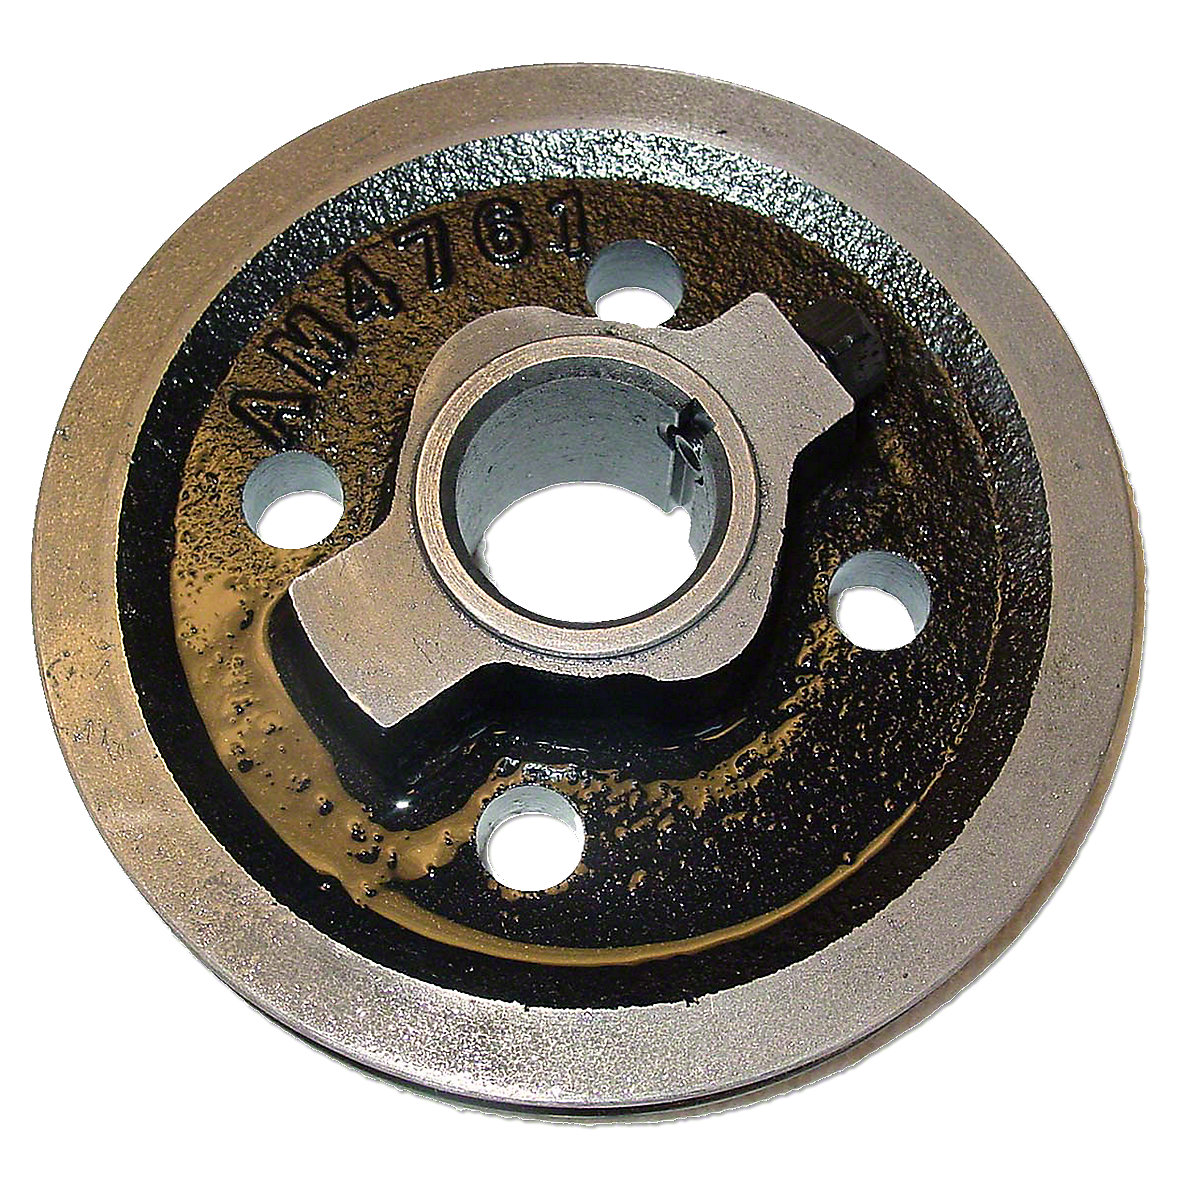 Crank Shaft Pulley For Allis Chalmers: D10, D12, D15 Gas, I60